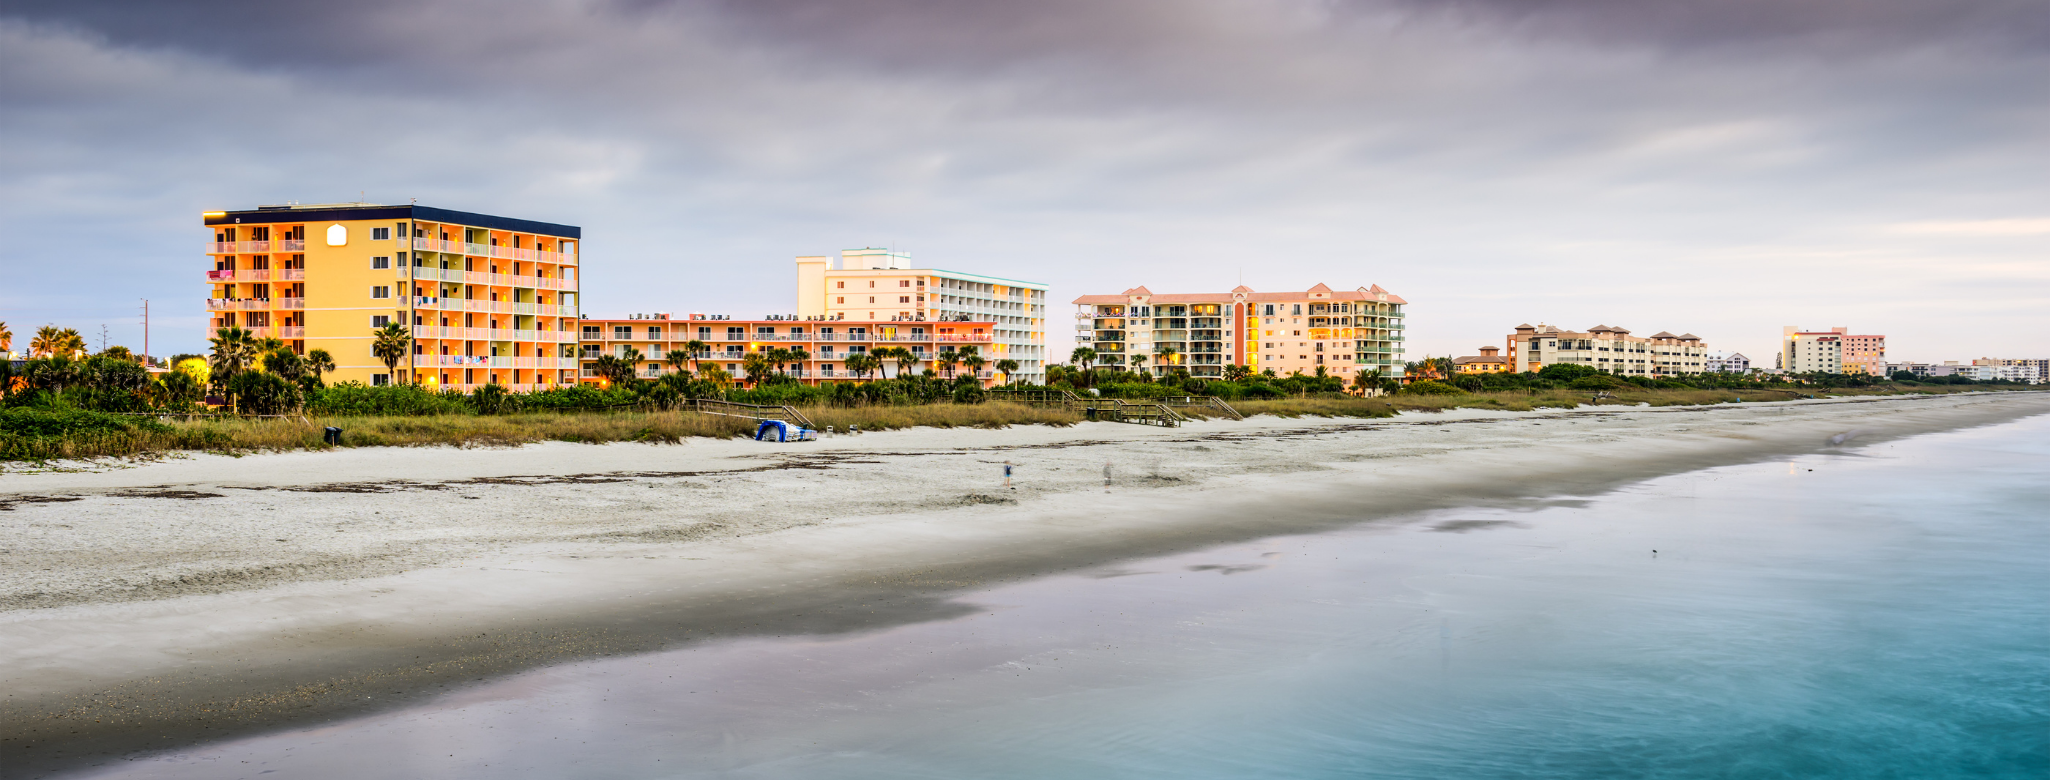 photo of condos along Cocoa Beach, FL